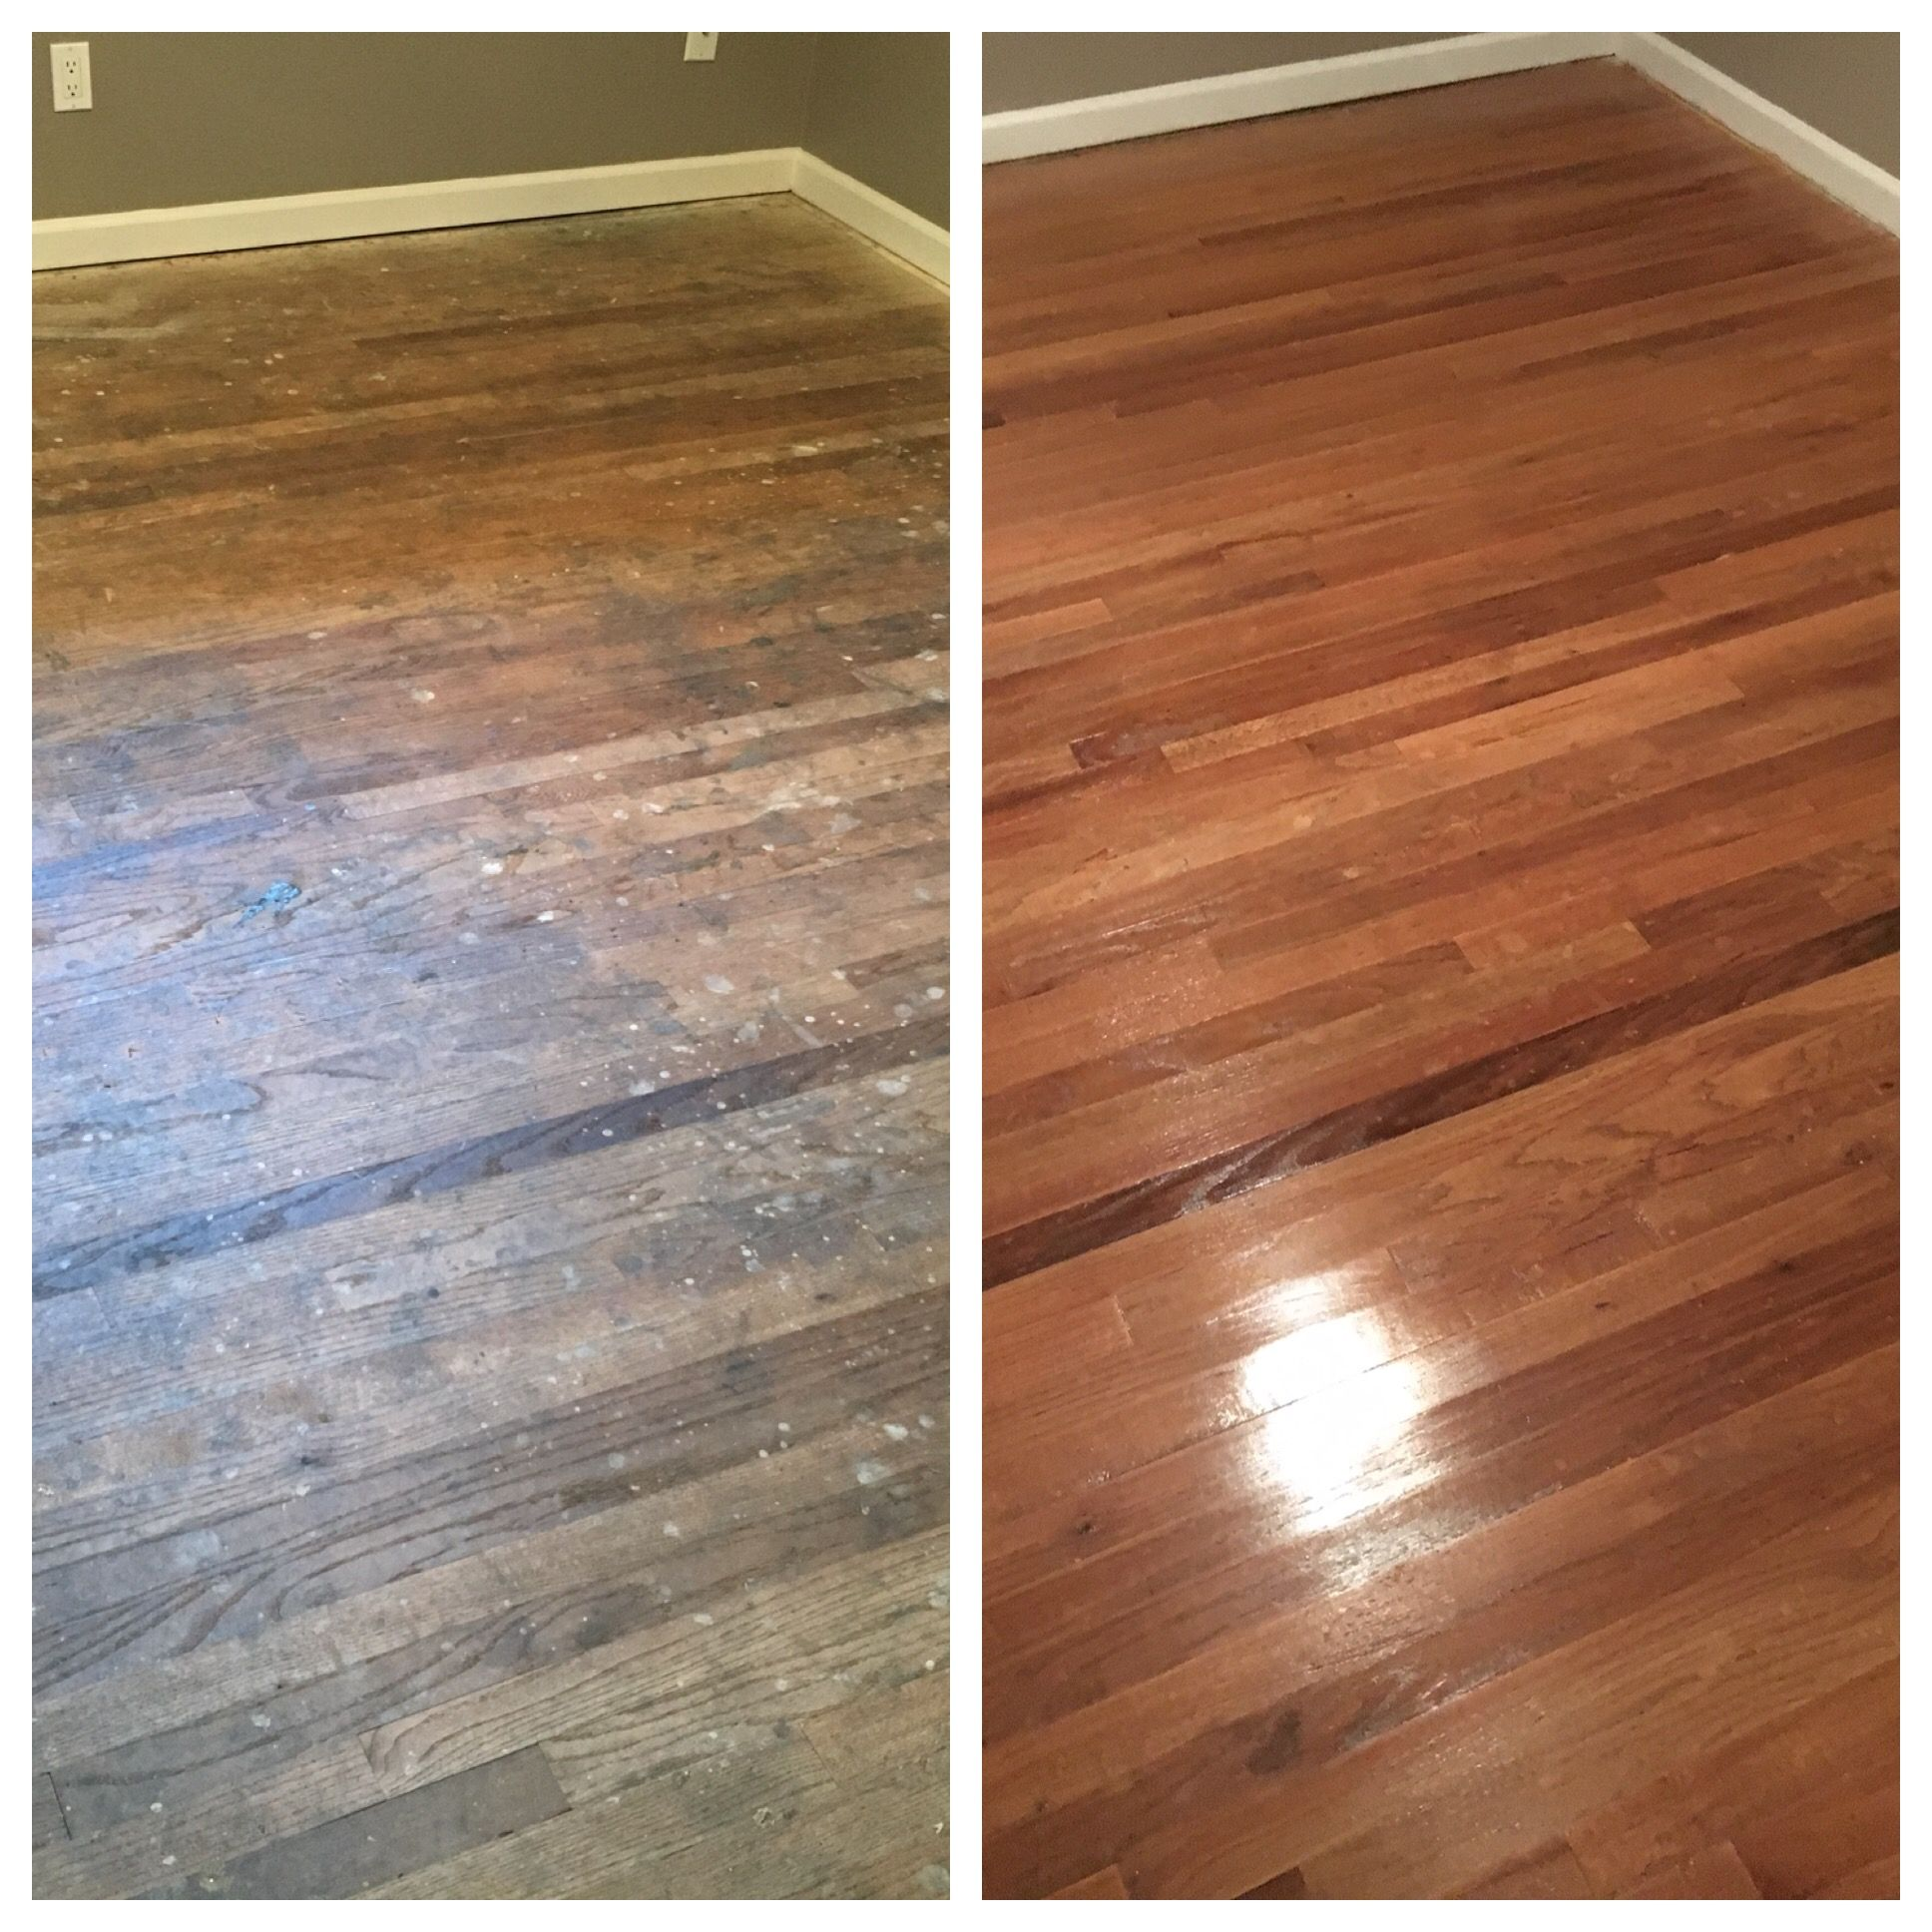 Before And After Picture Of A Beautiful Wood Floor That Was Refinished By Mr Sandless Of Greater Monterey Refinish Wood Floors Flooring Clean Hardwood Floors